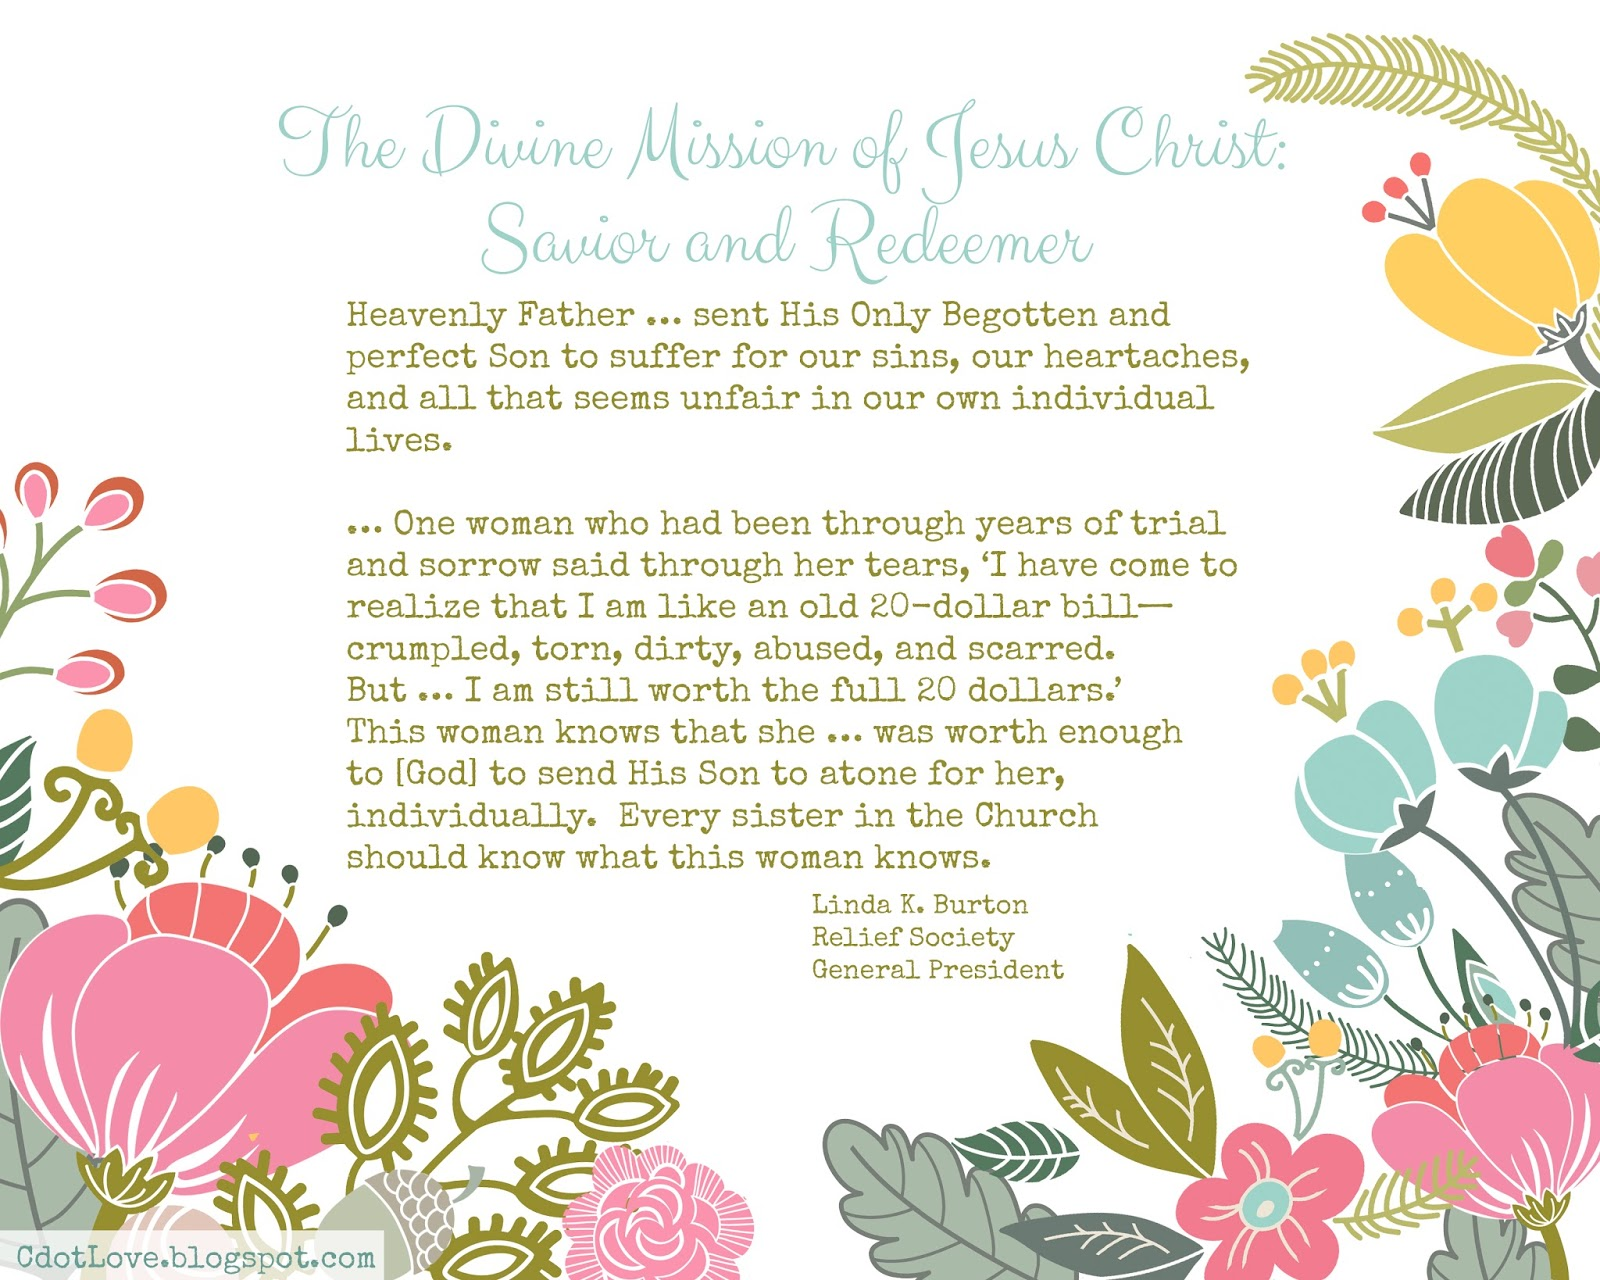 Cdotlove design by kristin clove april visiting teaching easter is coming thoughts turn to our savior and his mission on earth and great gift of the atonement negle Choice Image